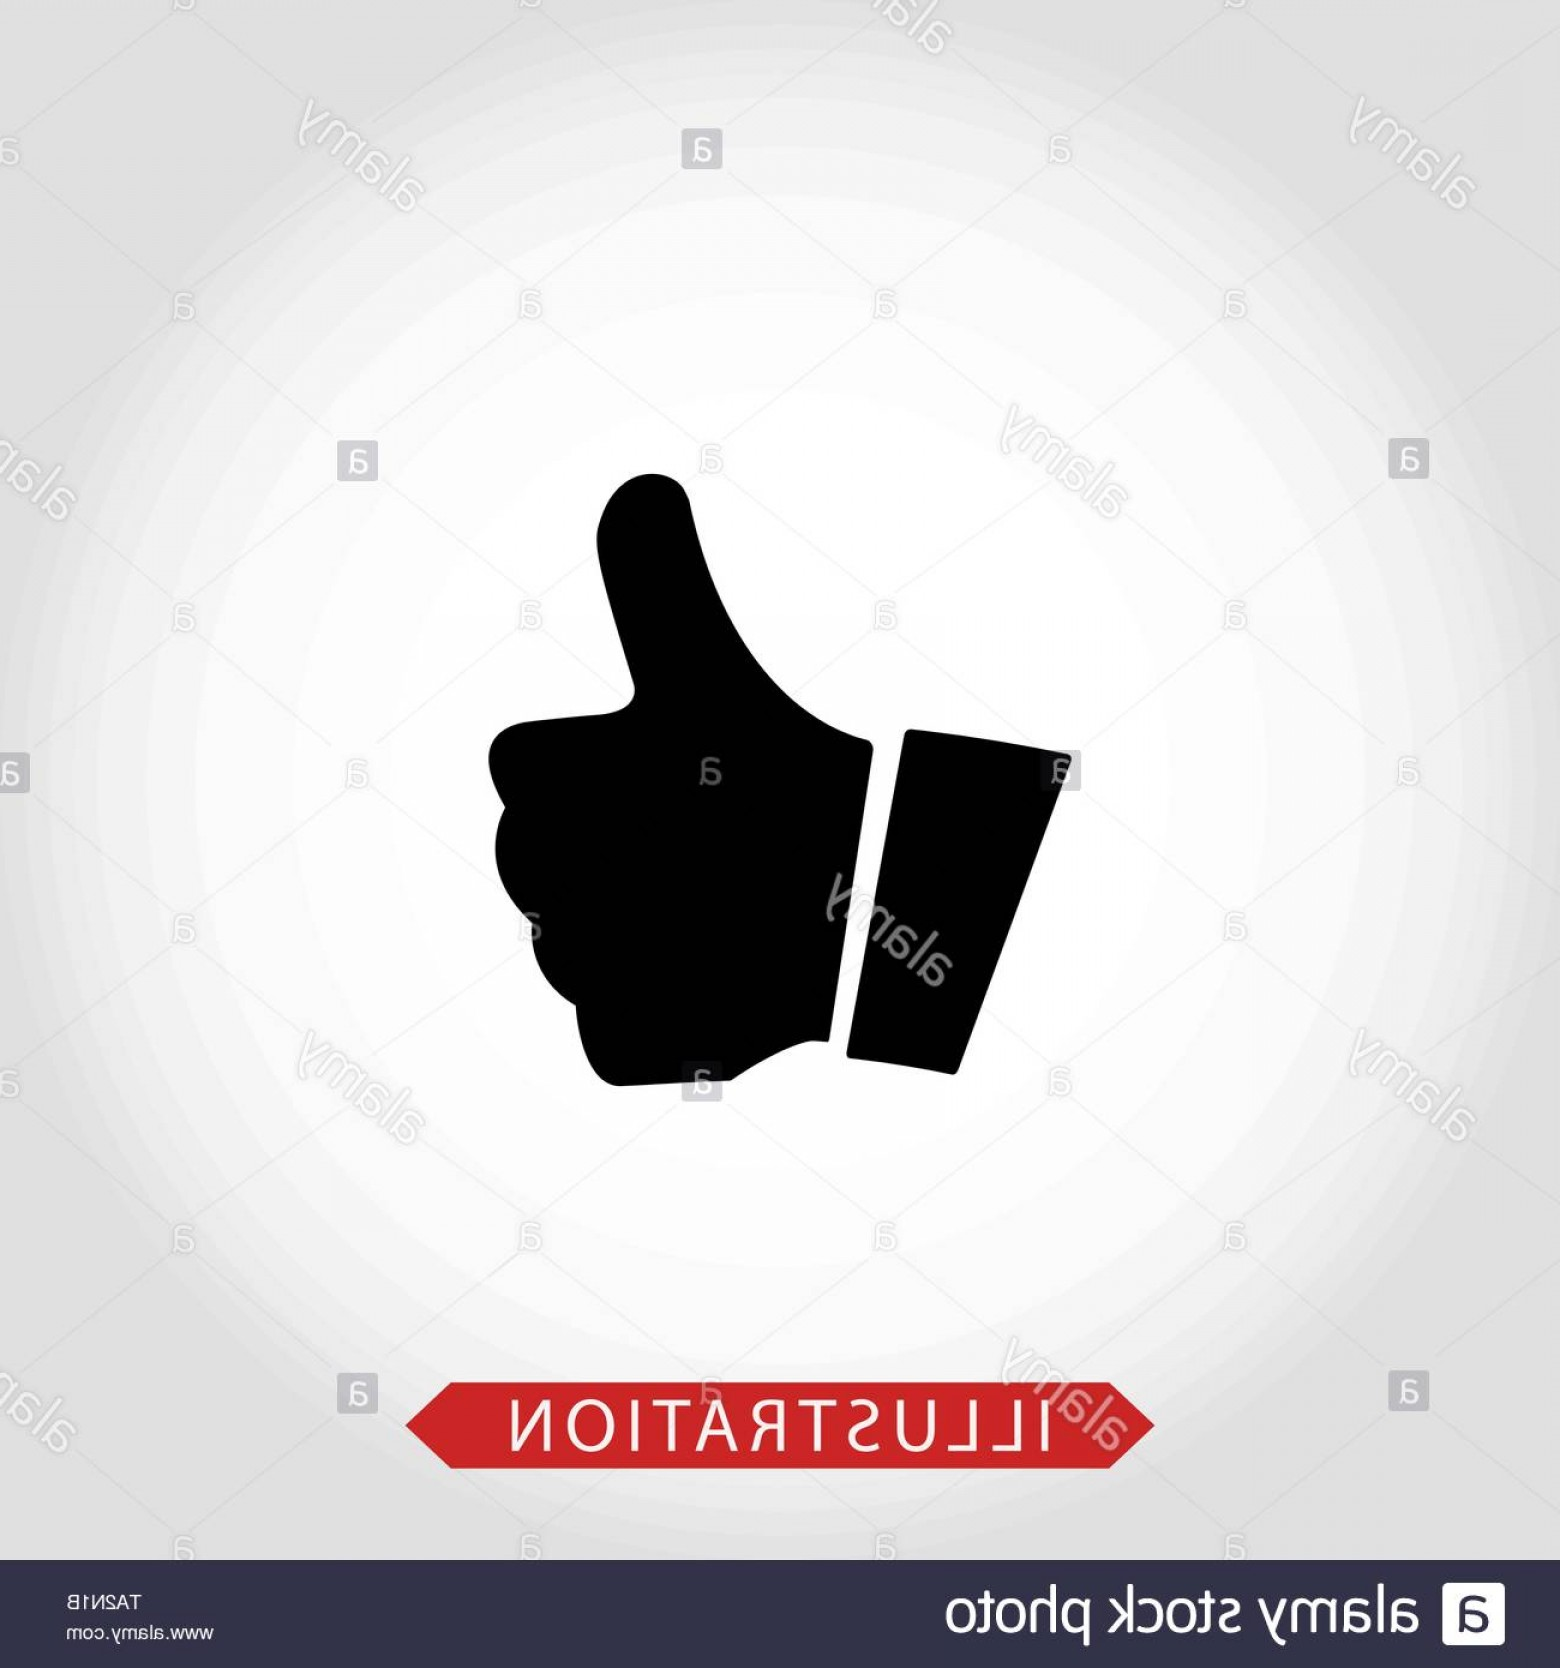 Vector Thumbs Up Down: Like Icon Vector Thumbs Up Icon Social Media Icon Like And Dislike Icon Thumbs Up And Thumbs Down Eps Image